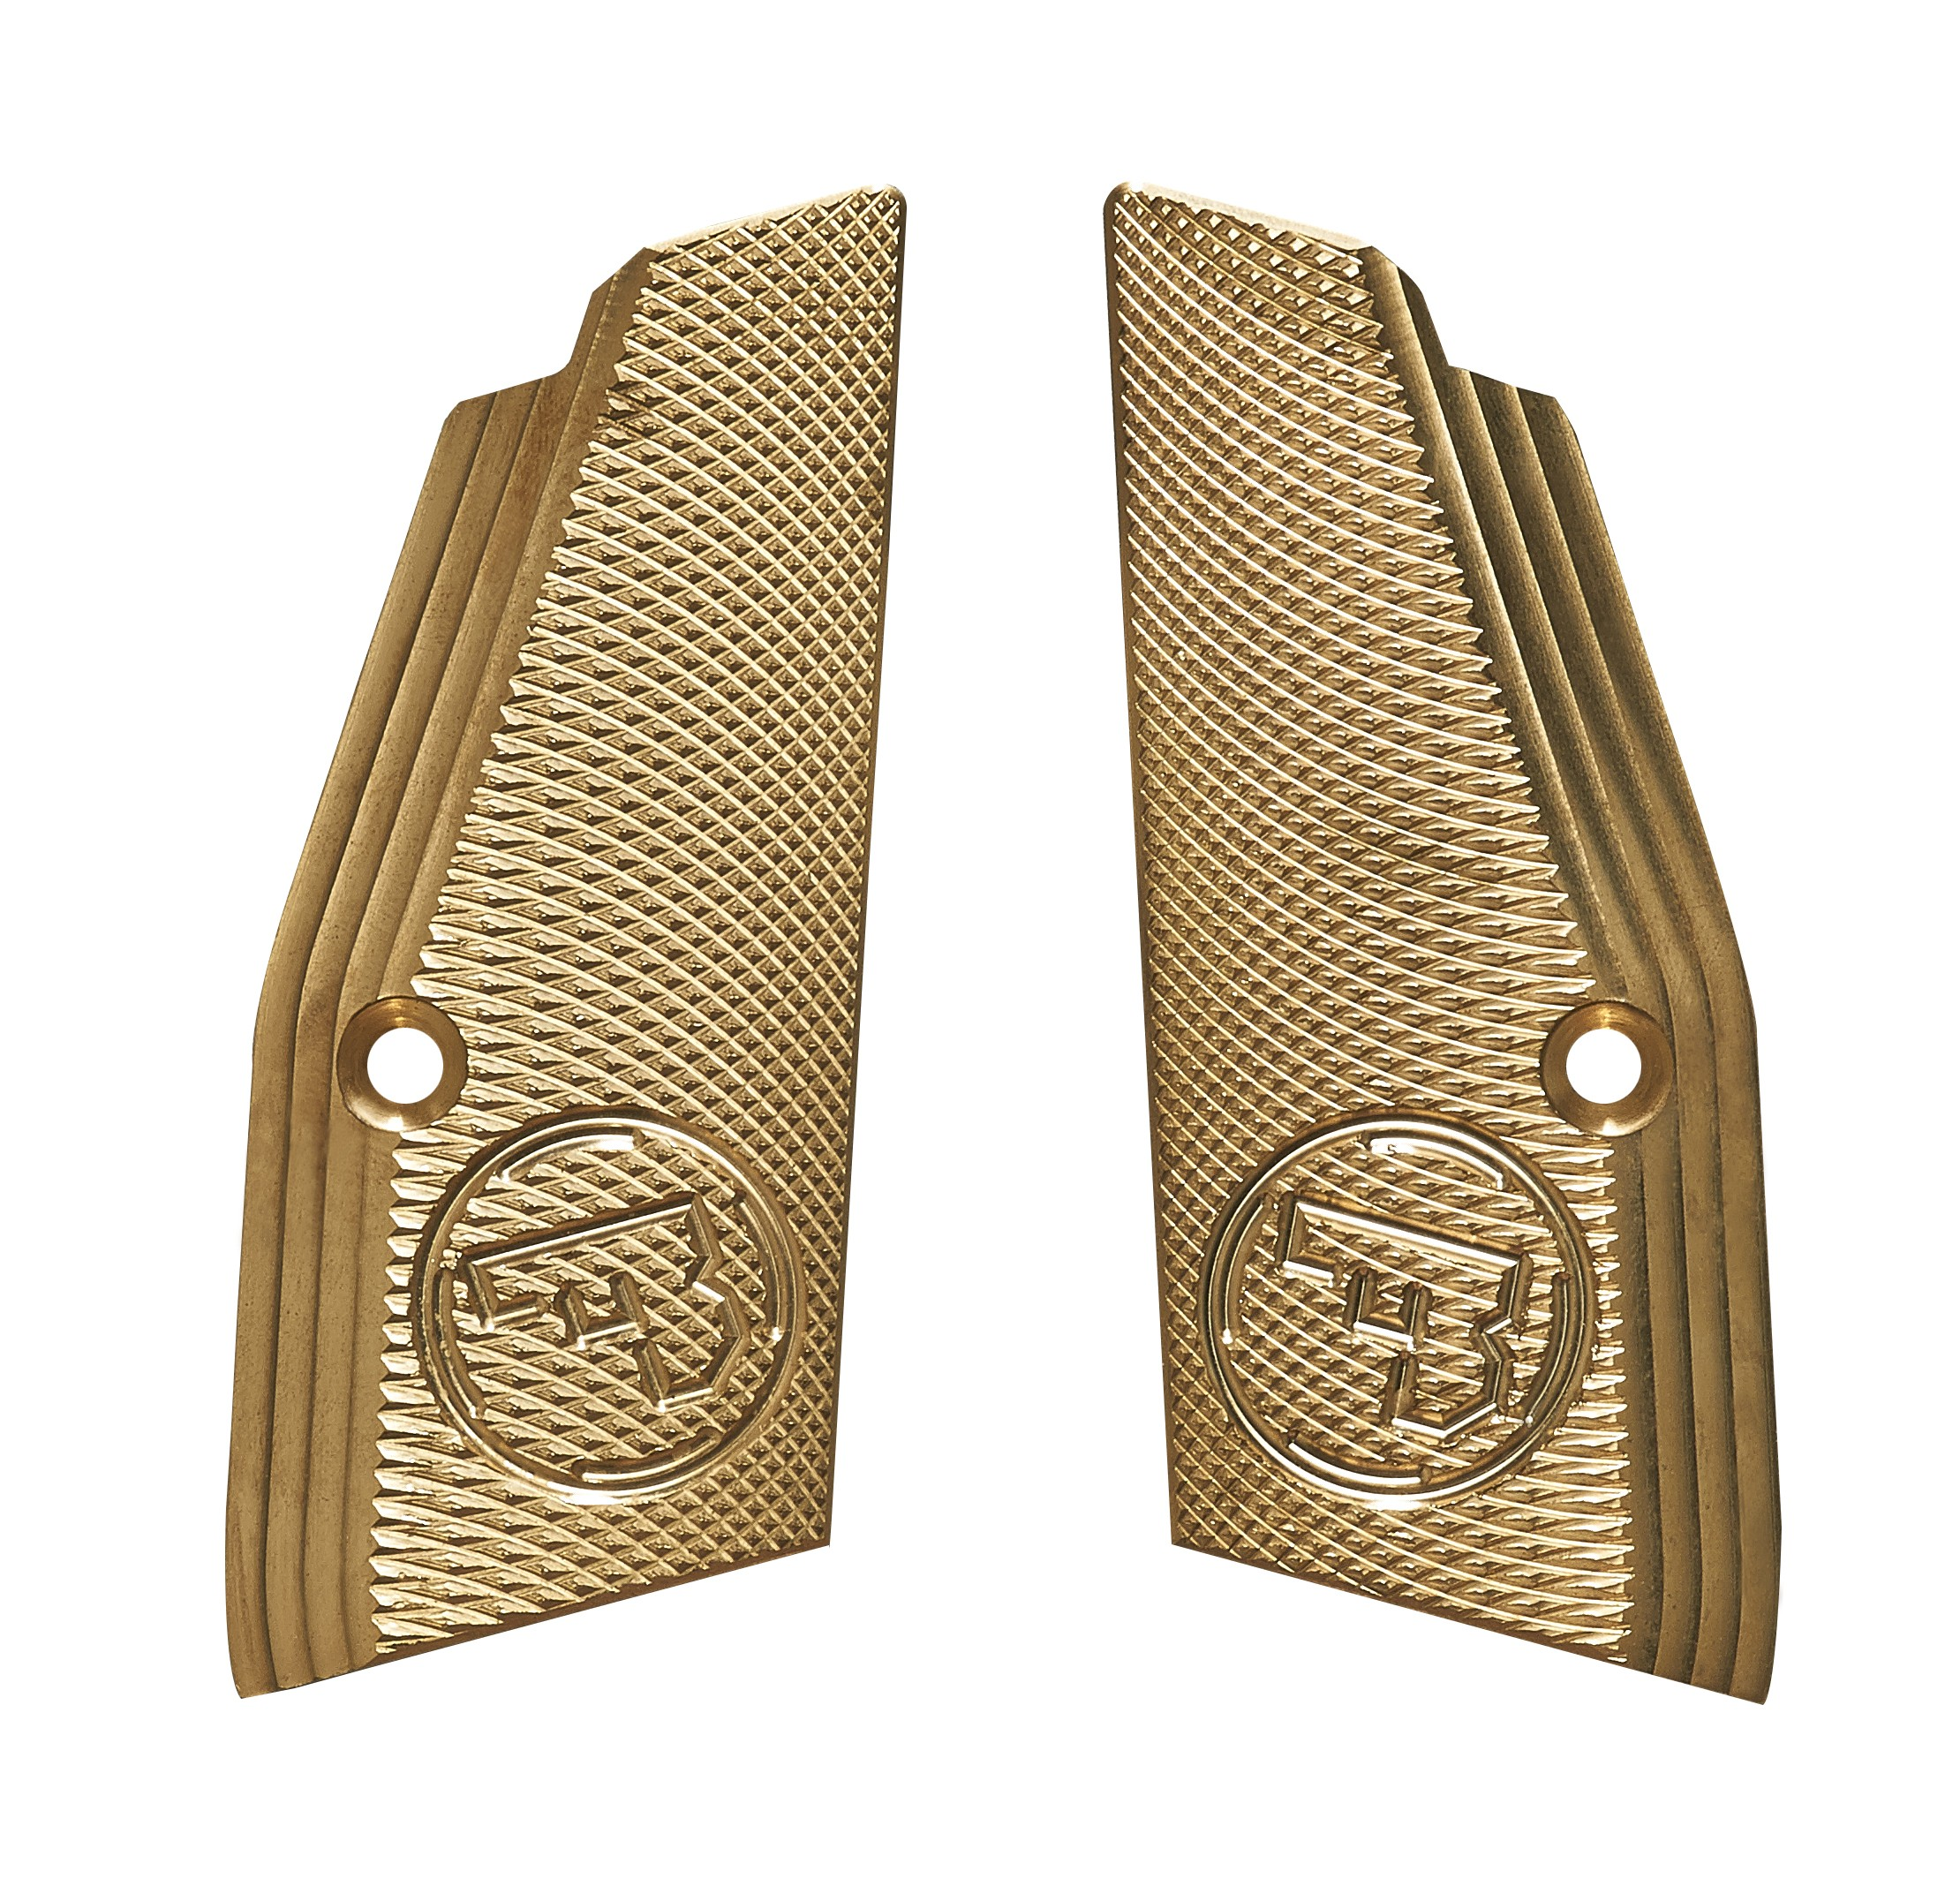 CZ 75 Brass Premium Grips with Funnel - Short - CZUB®